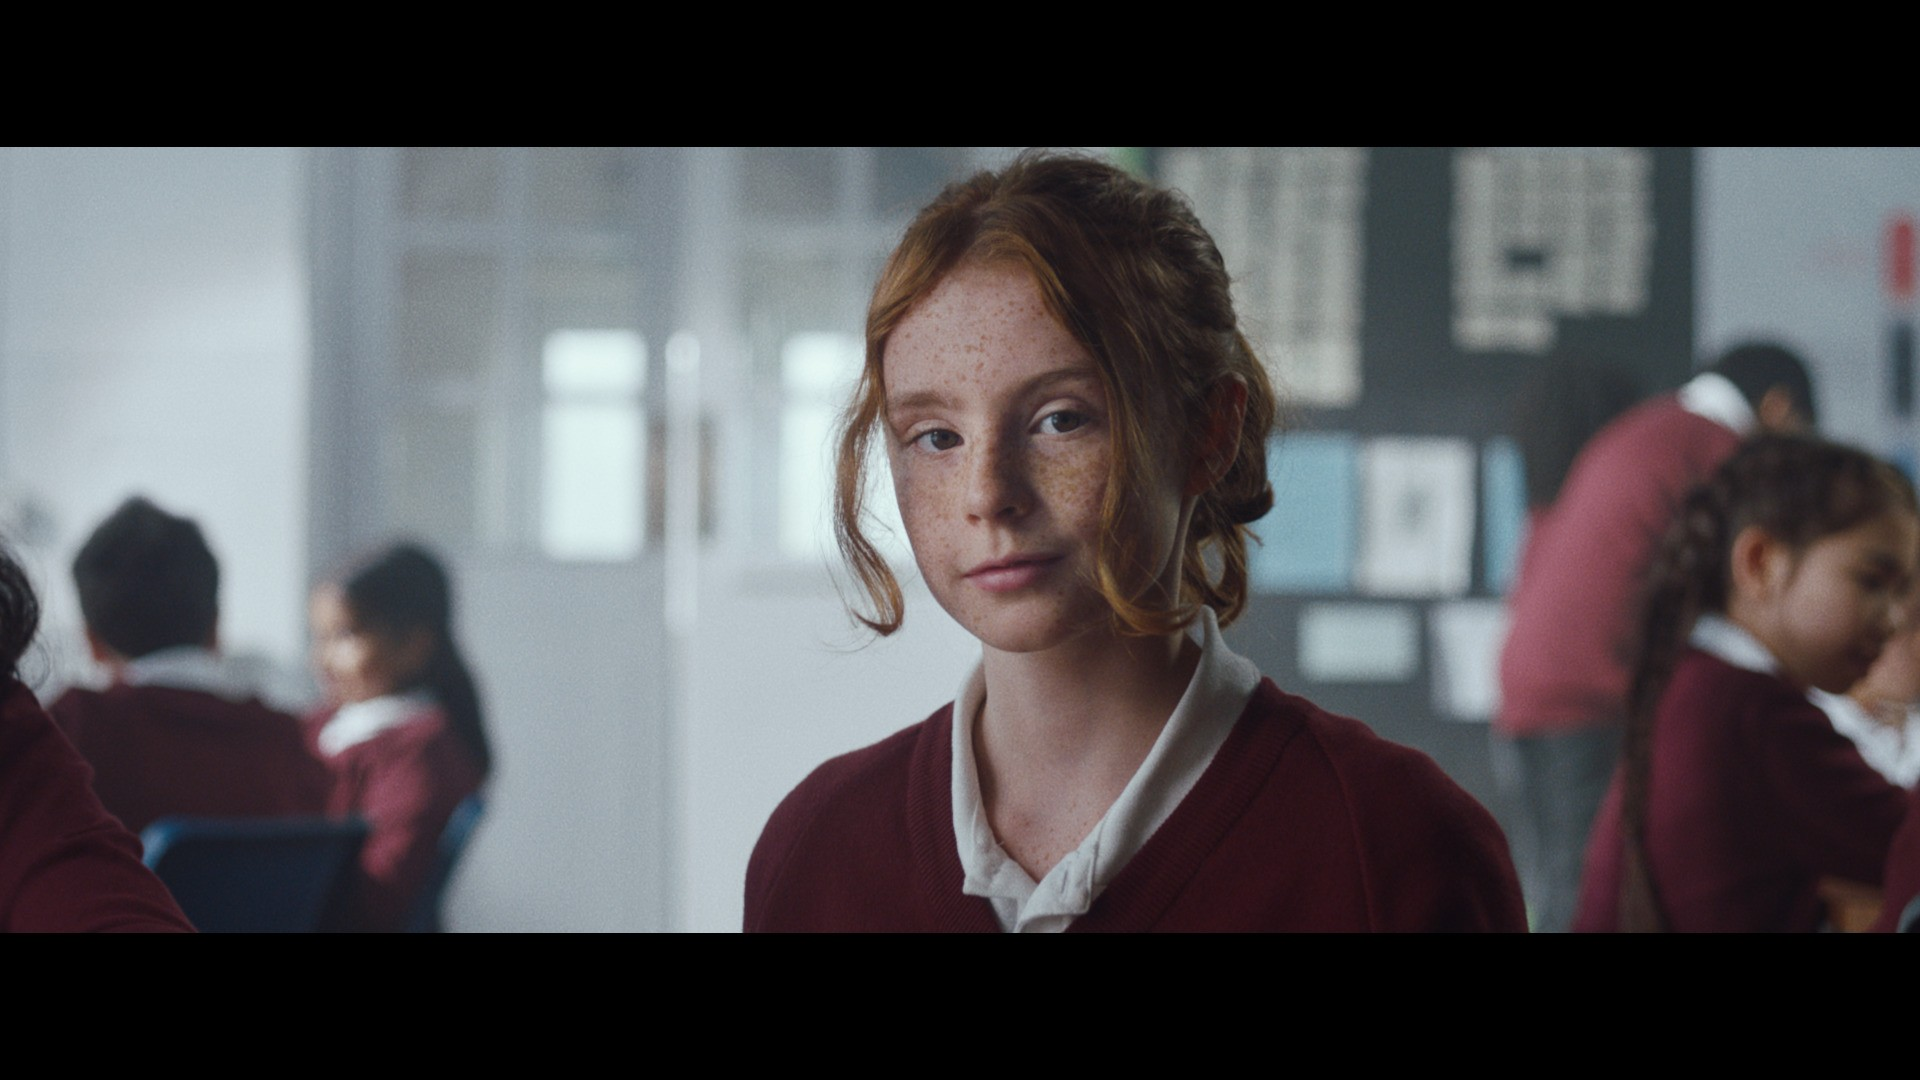 Poppy Advert still